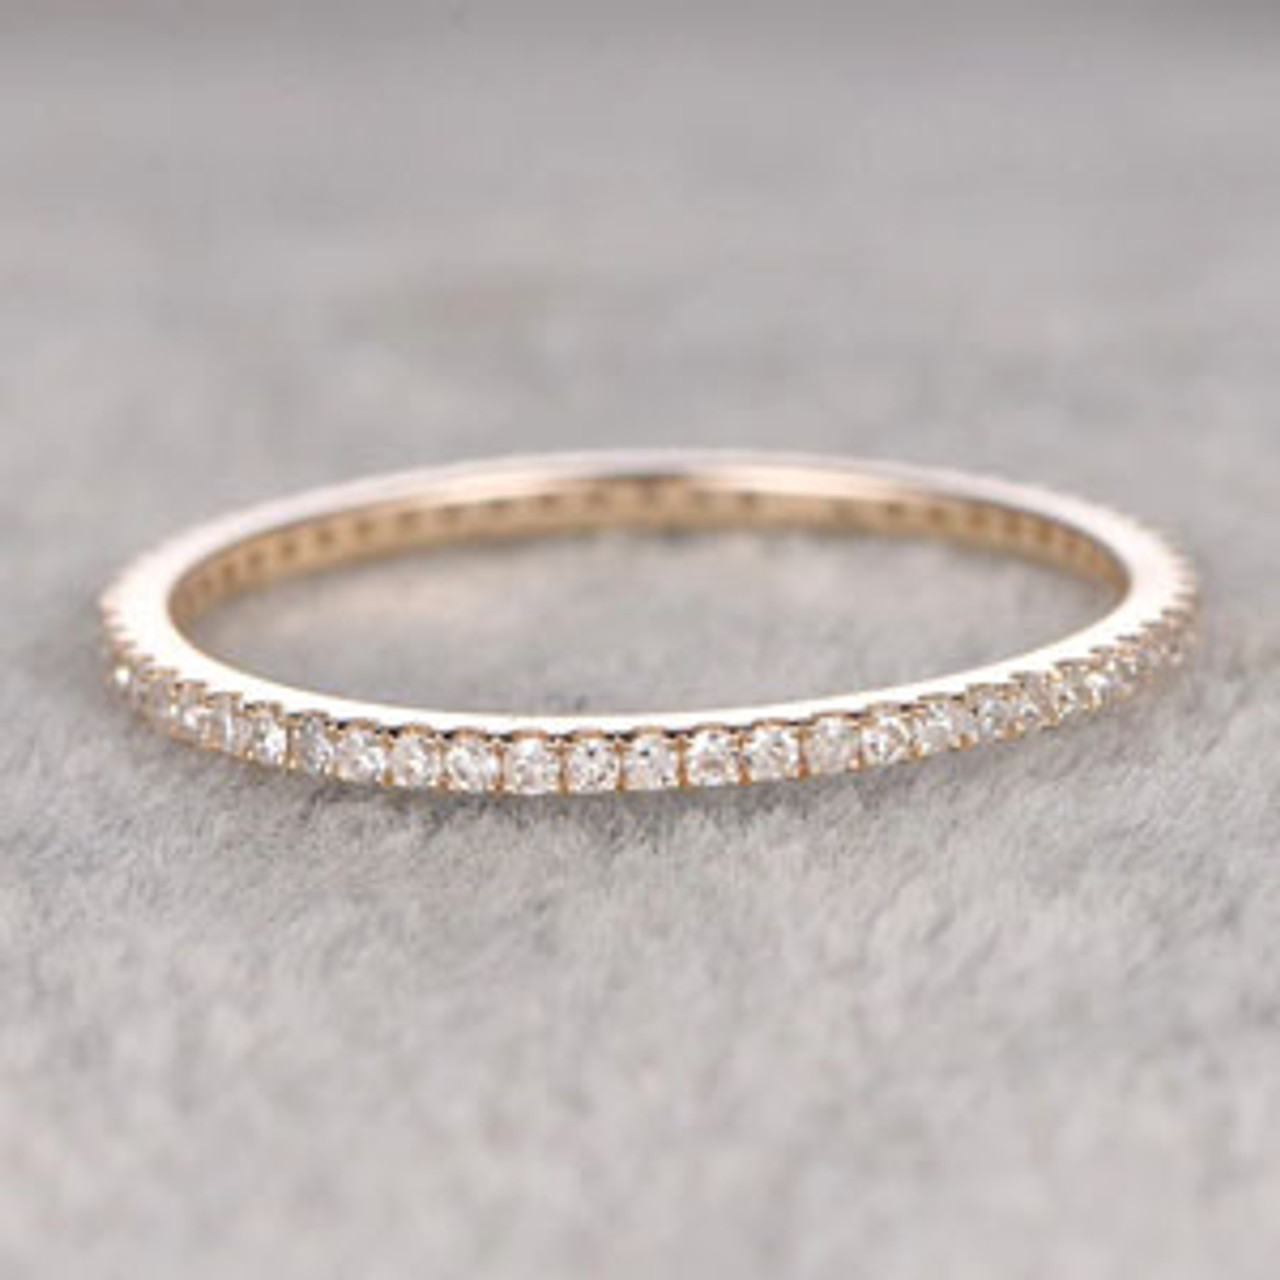 4d8d3bfd35da8 Diamond Wedding Rings For Her 14k Yellow Gold Thin Pave Full Eternity Band  Annivery Ring